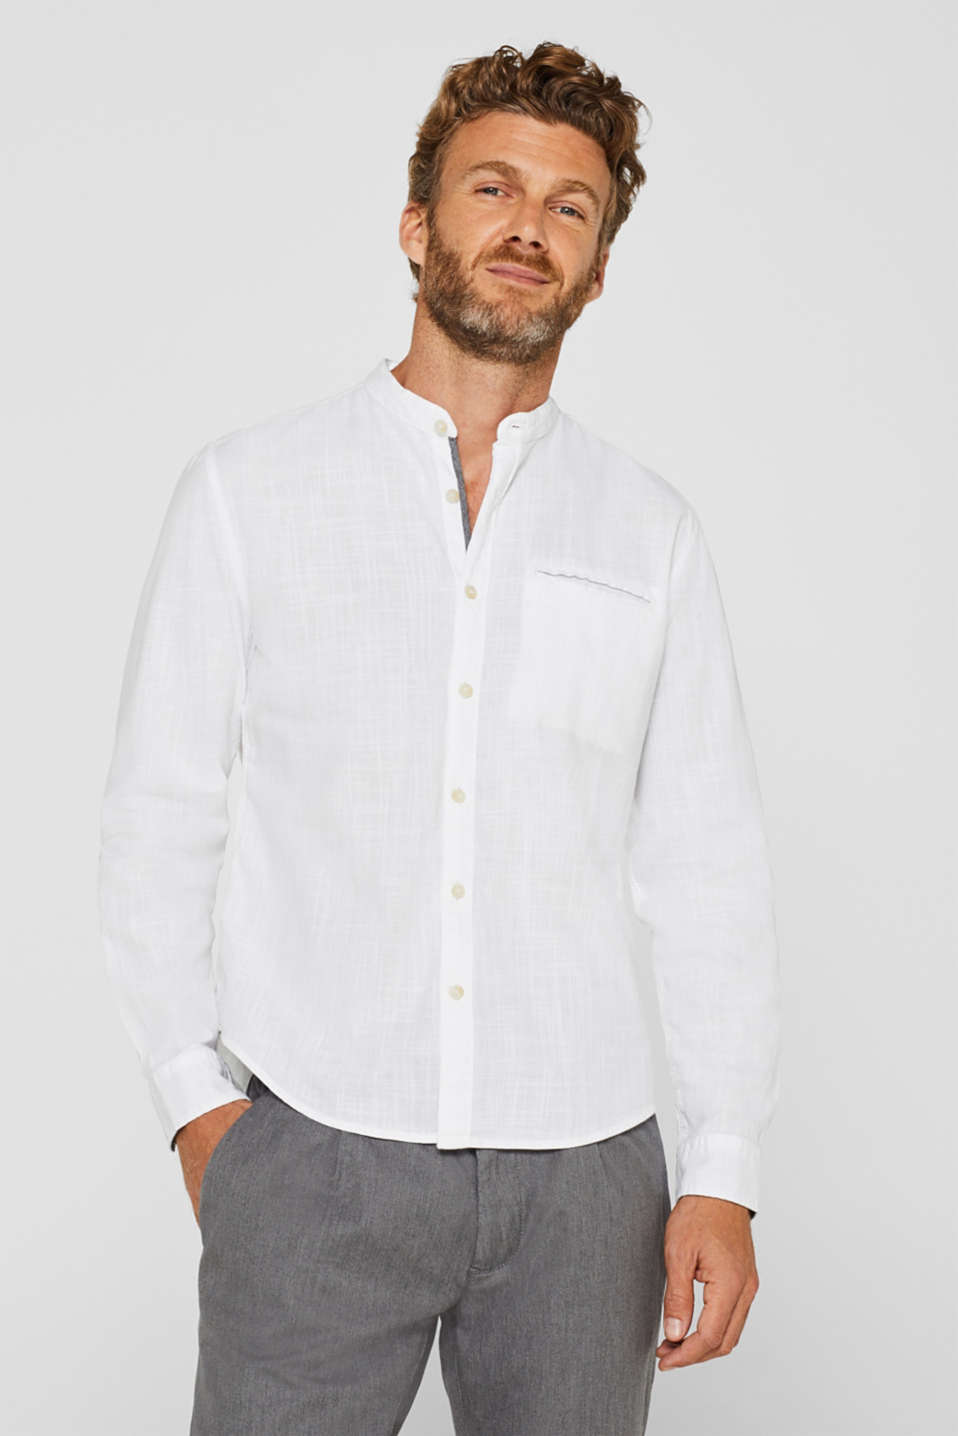 Esprit - Shirt with a woven texture, 100% cotton